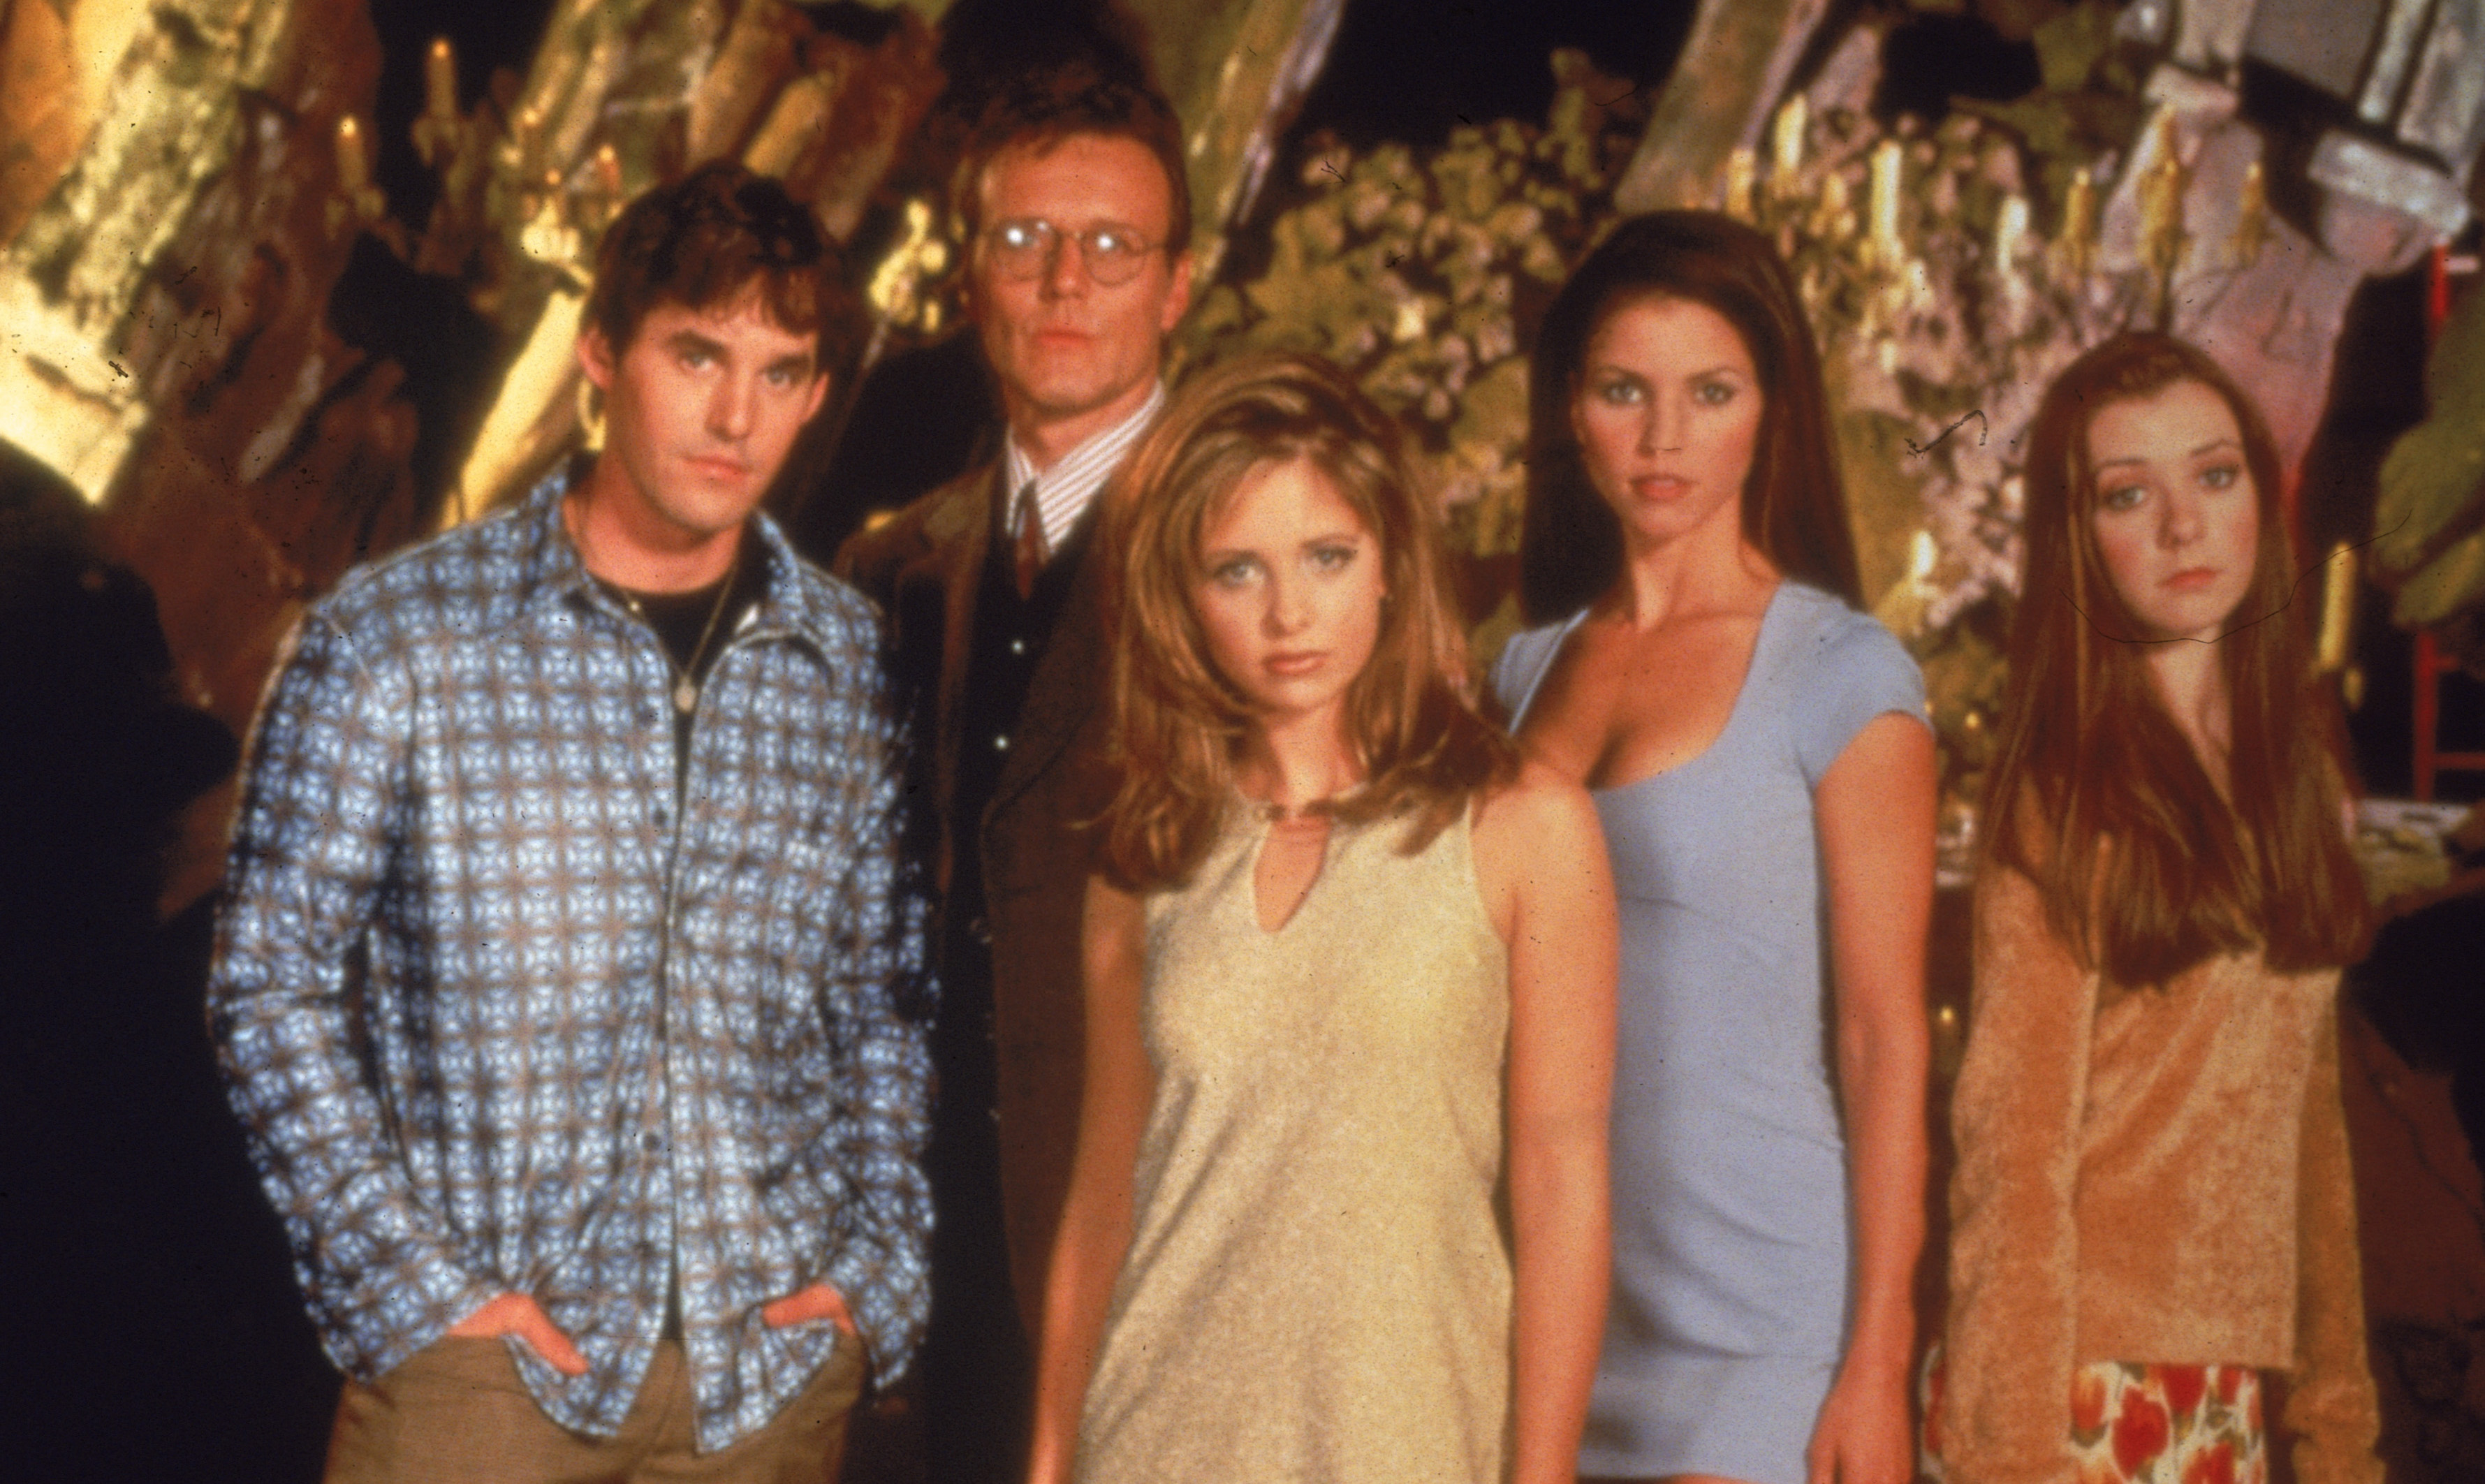 A <em>Buffy the Vampire Slayer</em> reboot is happening, and it will cast a black lead